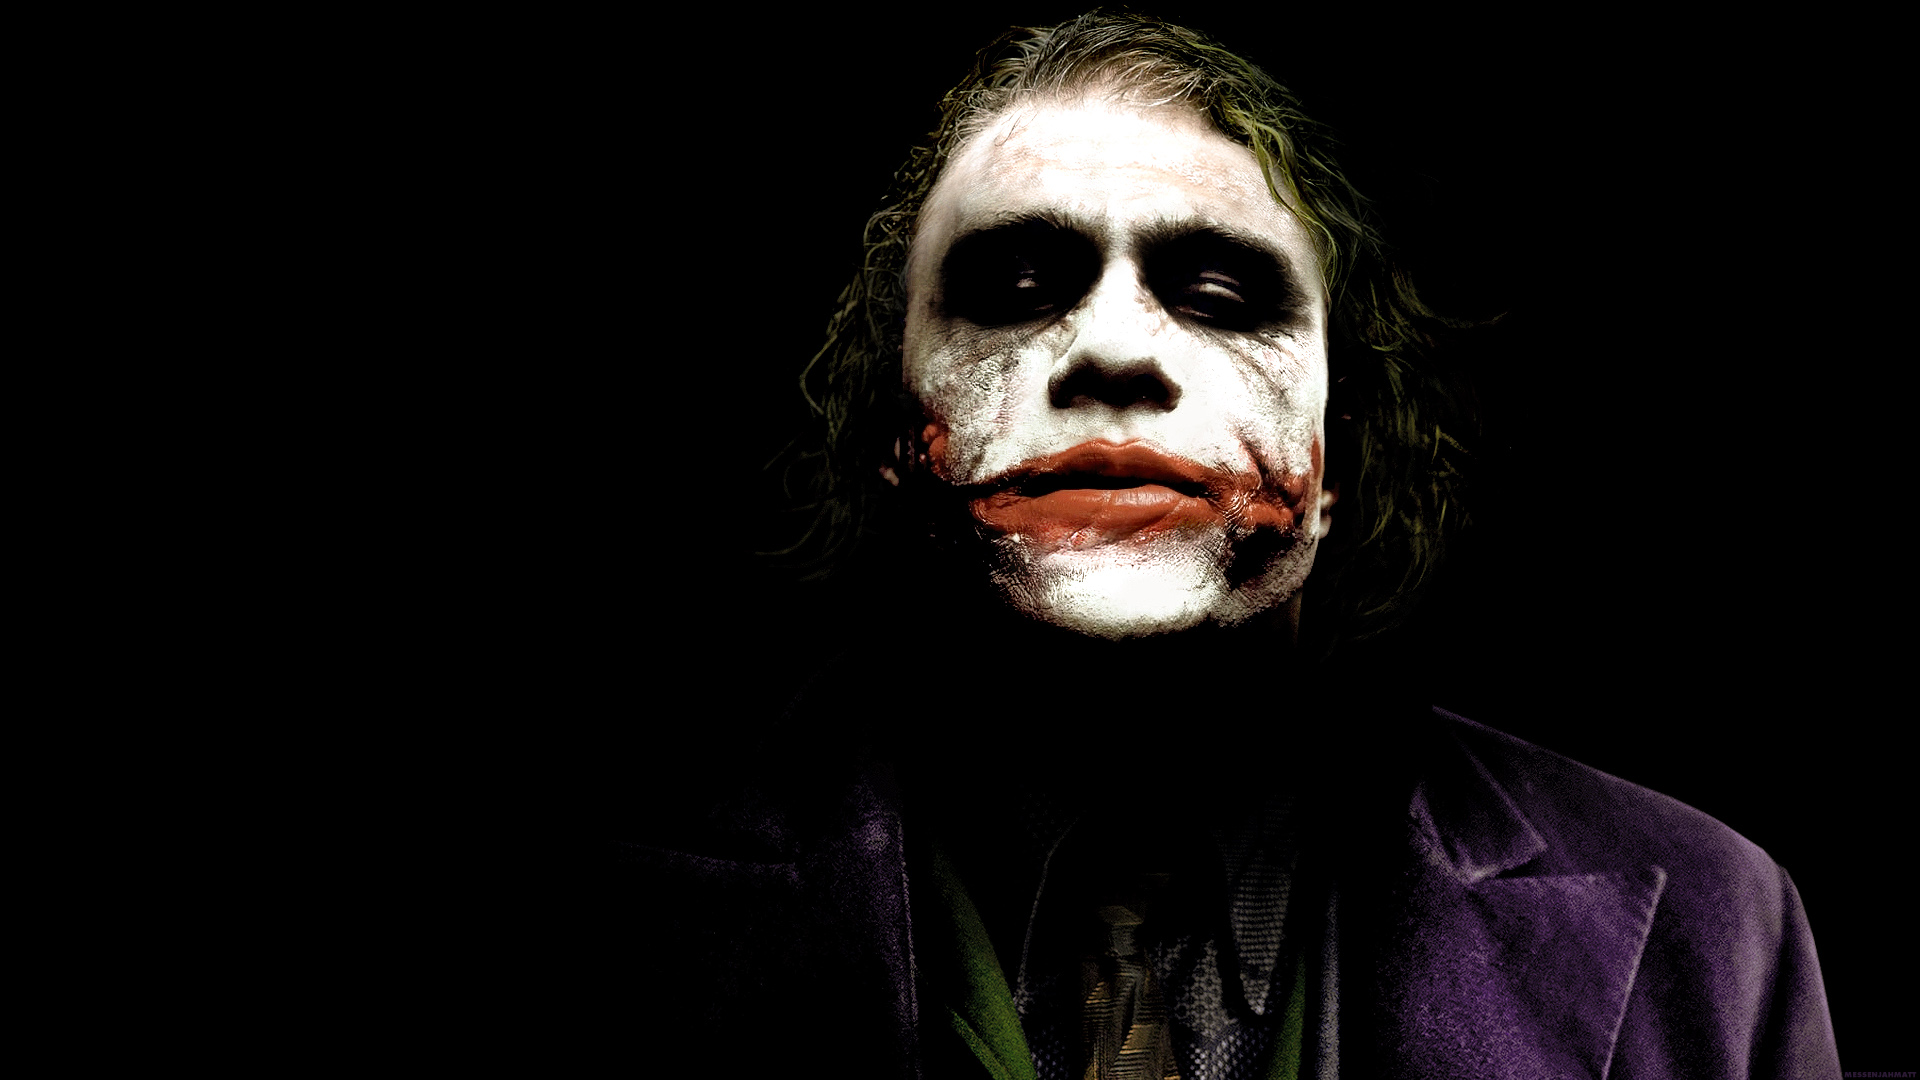 Joker Wallpaper 1920x1080 The Joker Heath Ledger Batman The Dark 1920x1080